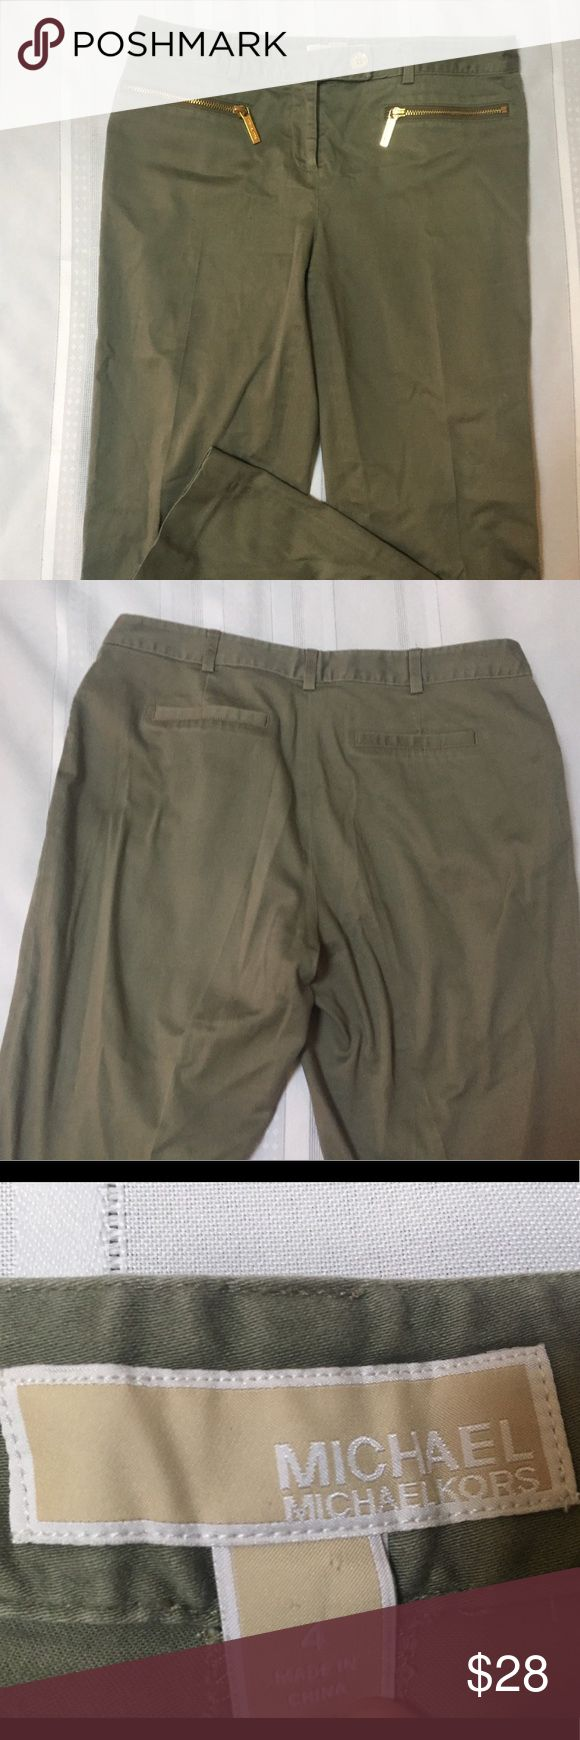 Michael Kors Army Green Slacks Dress Pants Size 4 ❤️ All profits from their purchase will be donated to the victims of the Tubbs fore in Northern California.🚒 These super cute Michael Kors Pants are classy and in style. It has two zippered front pockets and the two back pockets are decoration. It has some small scratches on the front pocket zippers, view pictures, but they are faint and not very noticeable. This is made from 97% Cotton and 3% Spandex. Michael Kors Pants Trousers